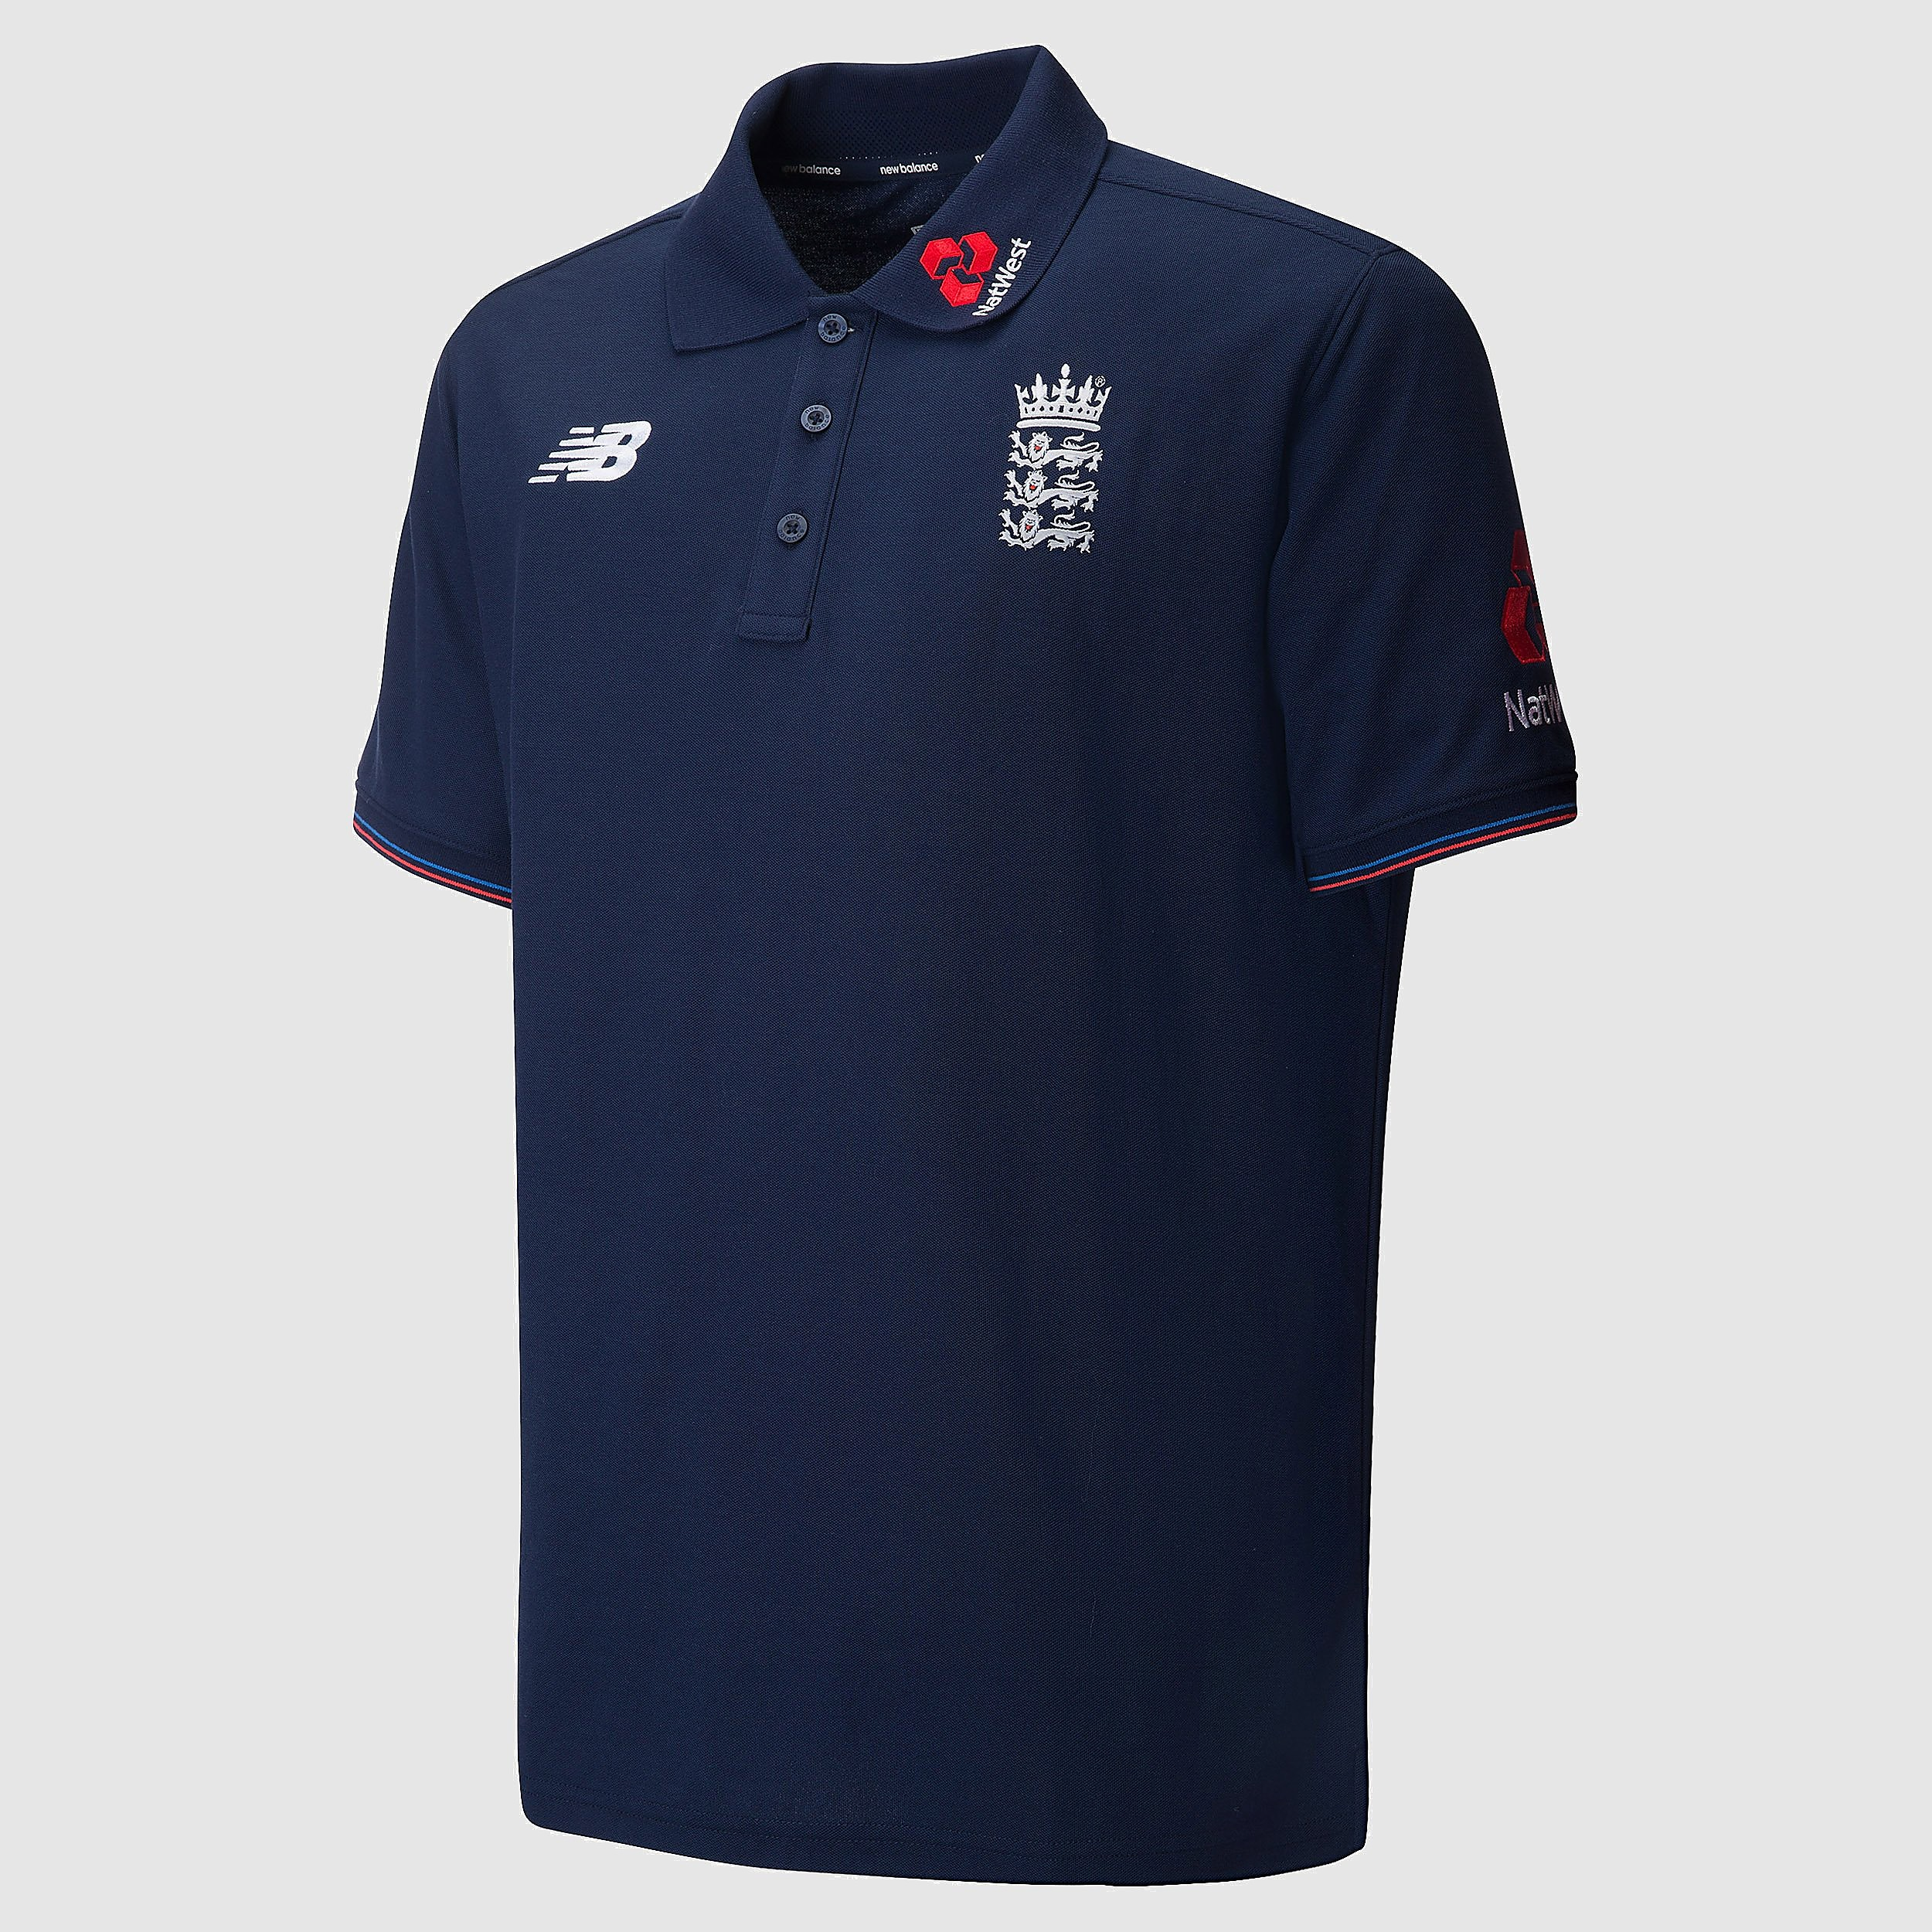 New Balance ECB Men's Polo Shirt